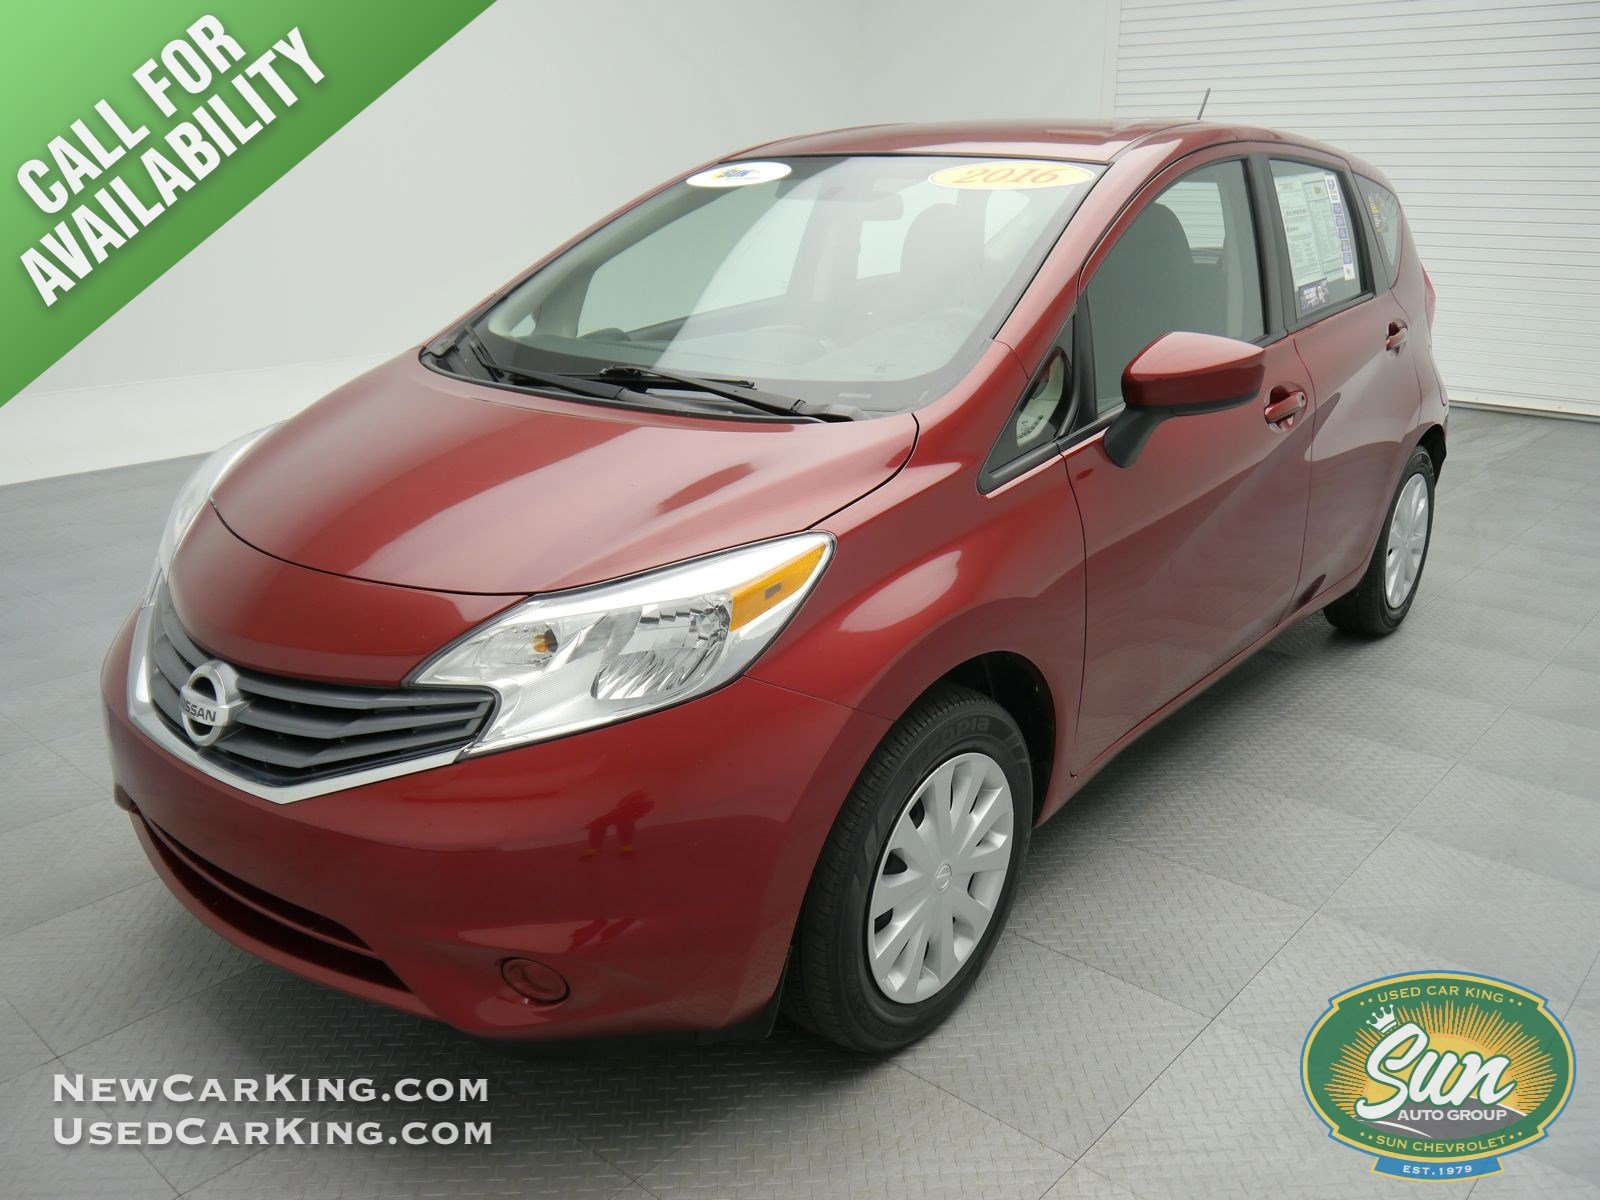 pre owned 2016 nissan versa note sv hatchback chittenango p52285 chittenango ny used car king. Black Bedroom Furniture Sets. Home Design Ideas